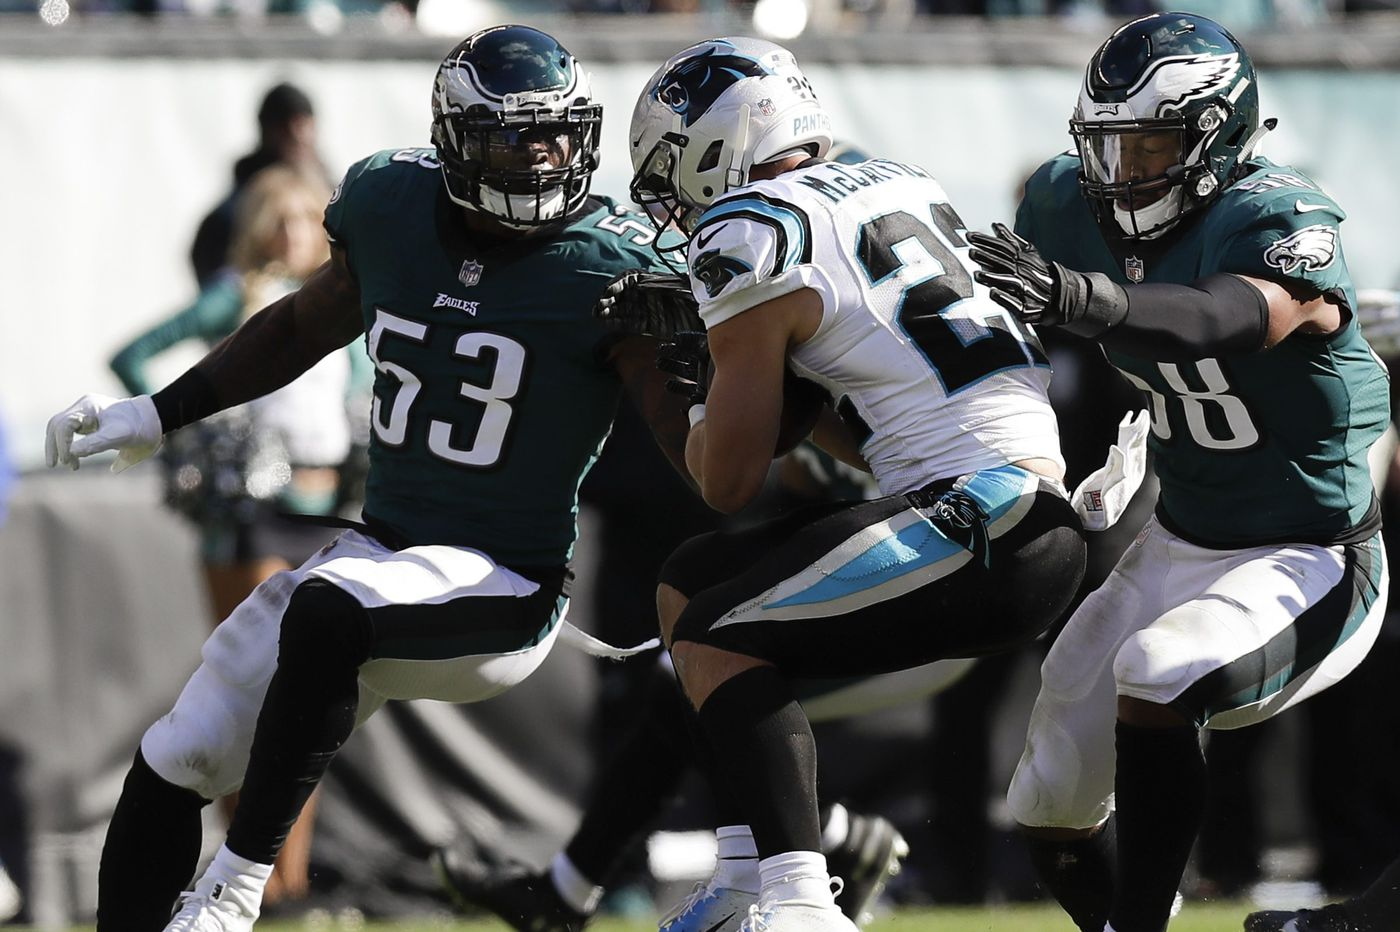 Key to Eagles victory Sunday will be neutralizing Ezekiel Elliott and Dallas Cowboys run game